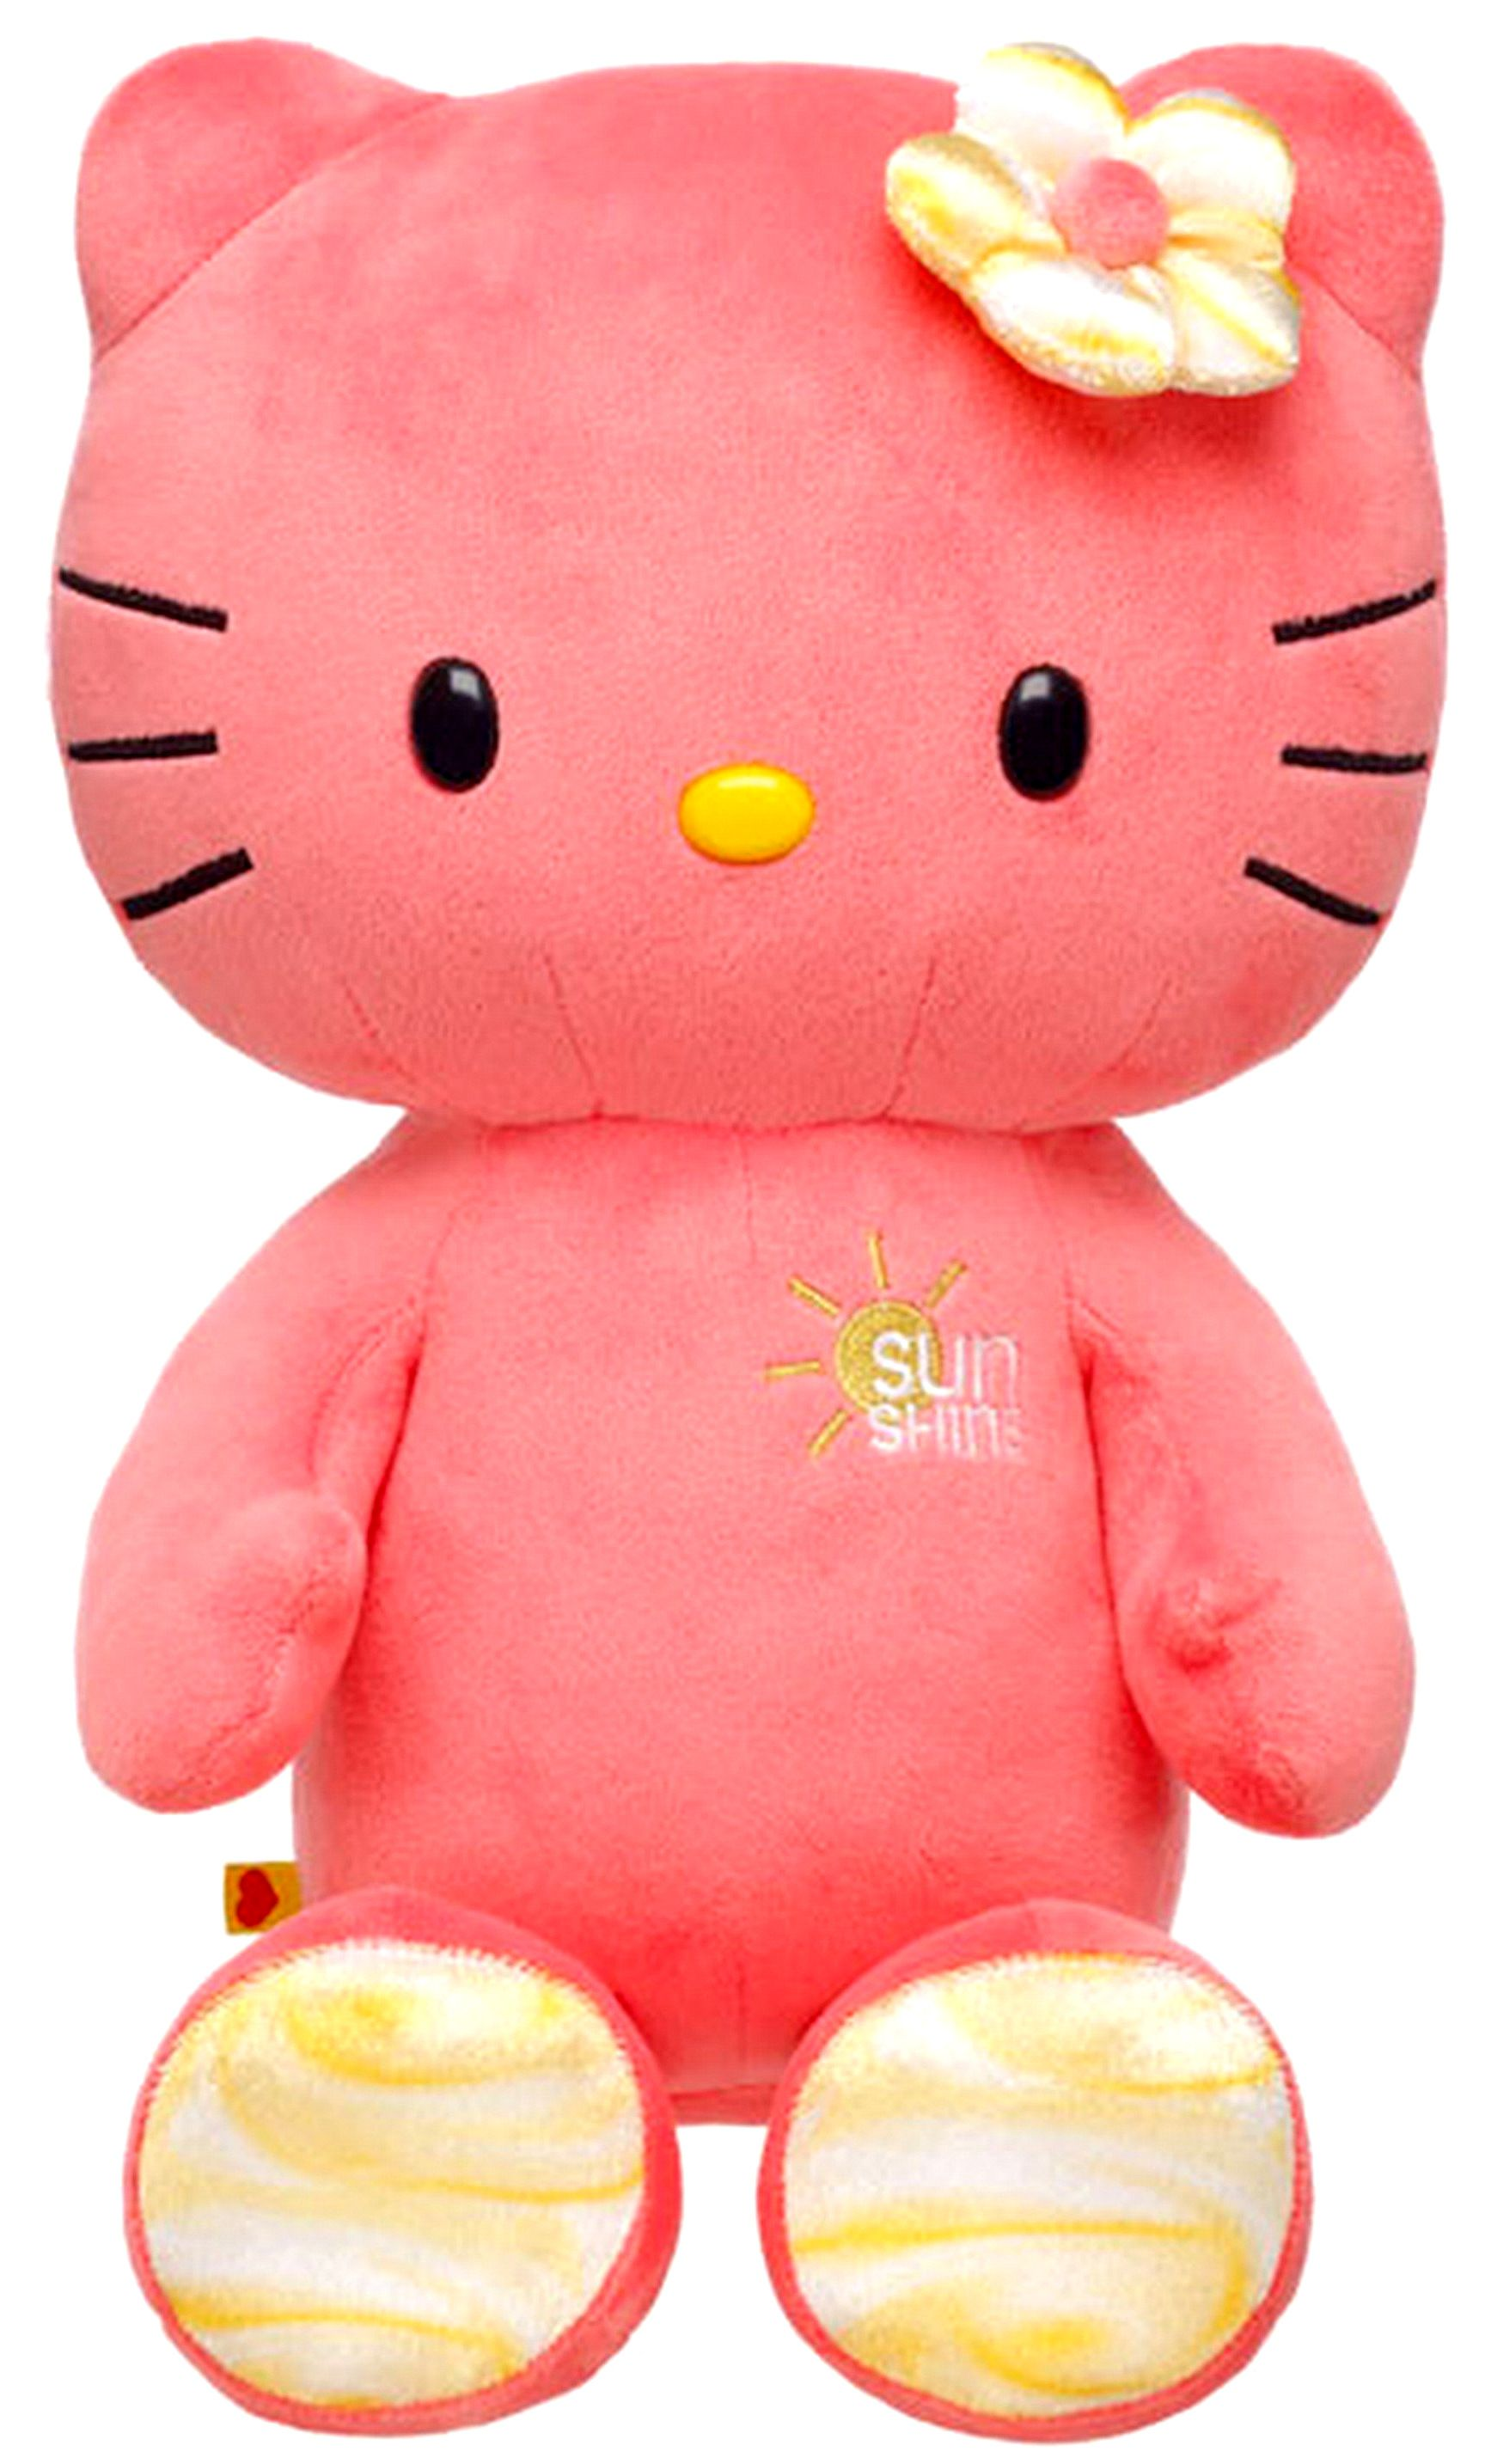 d6df38d8f NEW Build a Bear Workshop Hello Kitty Sunshine Coral Large 18 inch Sanrio  Unstuffed Plush Toy